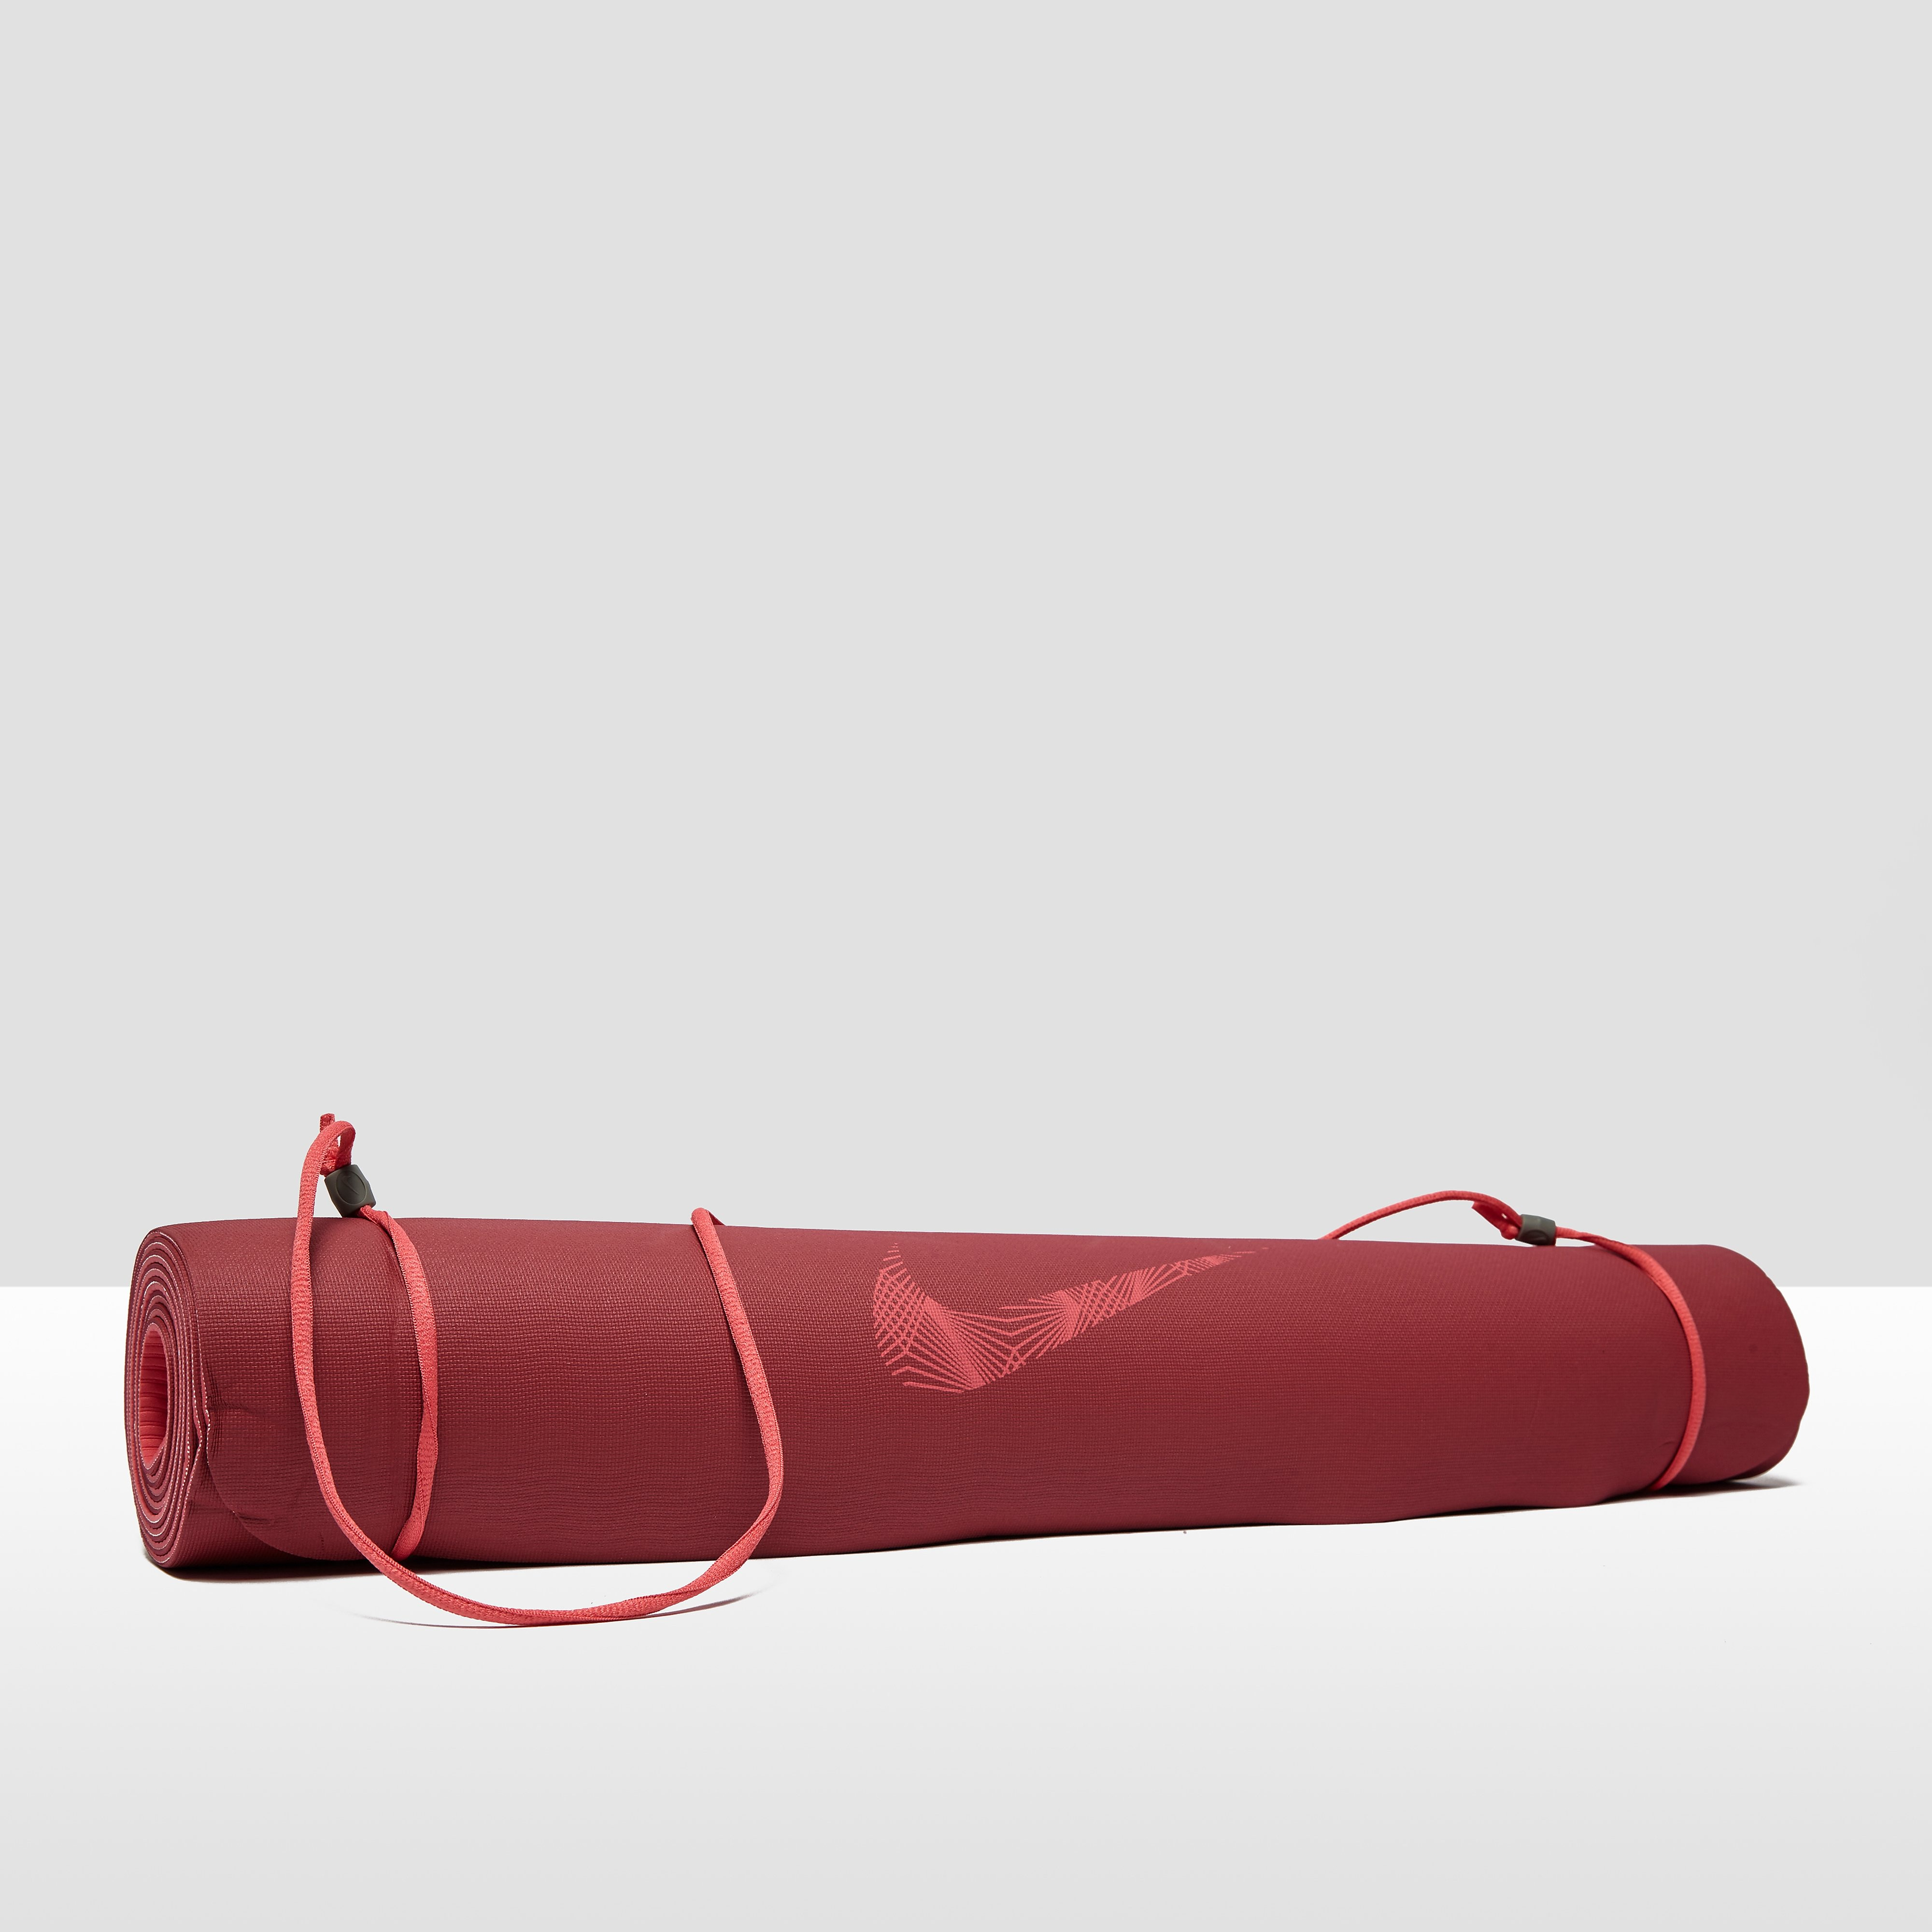 Nike JUST DO IT YOGA MAT 2.0